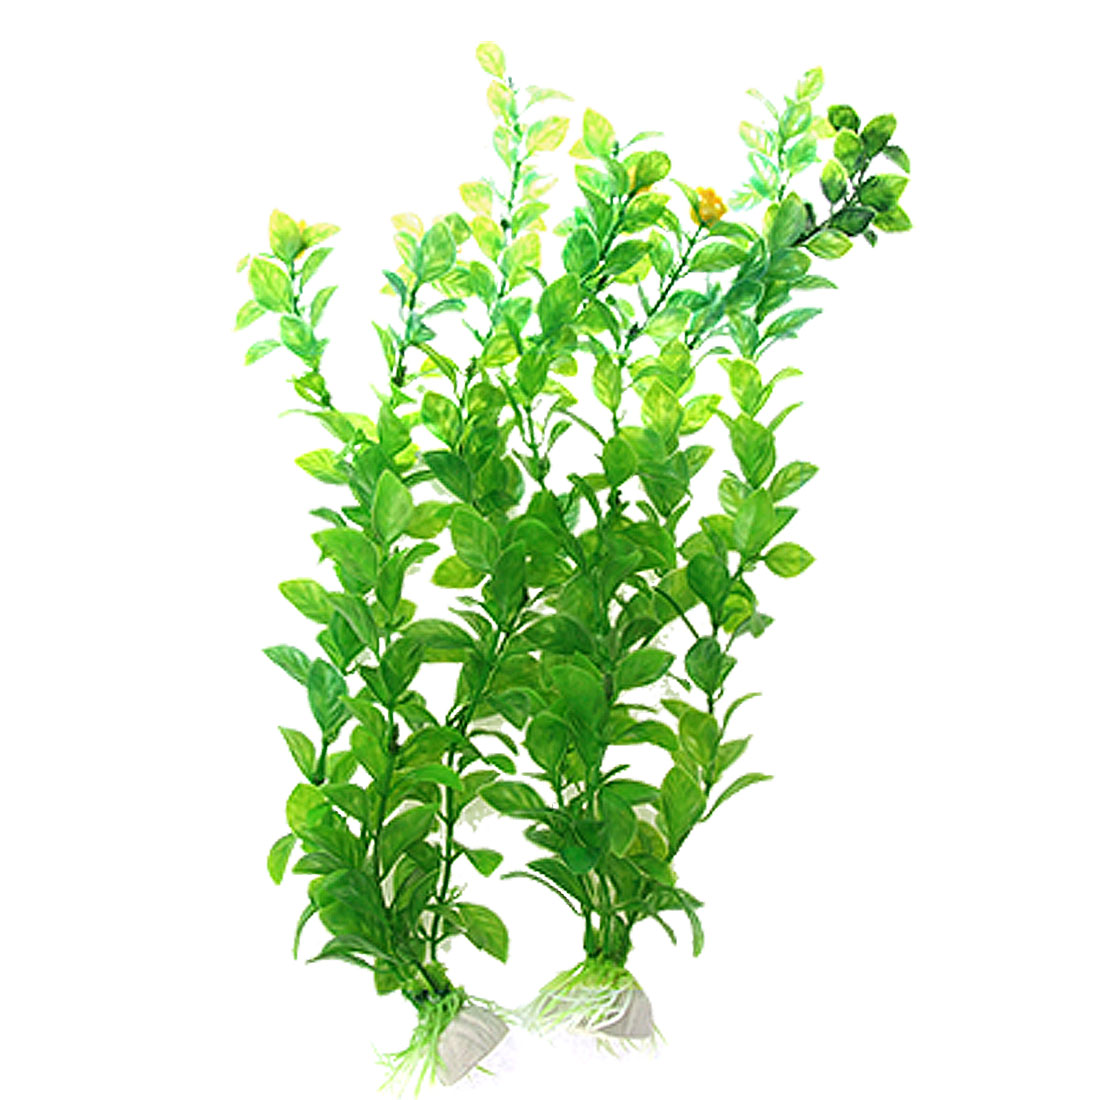 Green Fish Tank Decoration Aquarium Plastic Plants